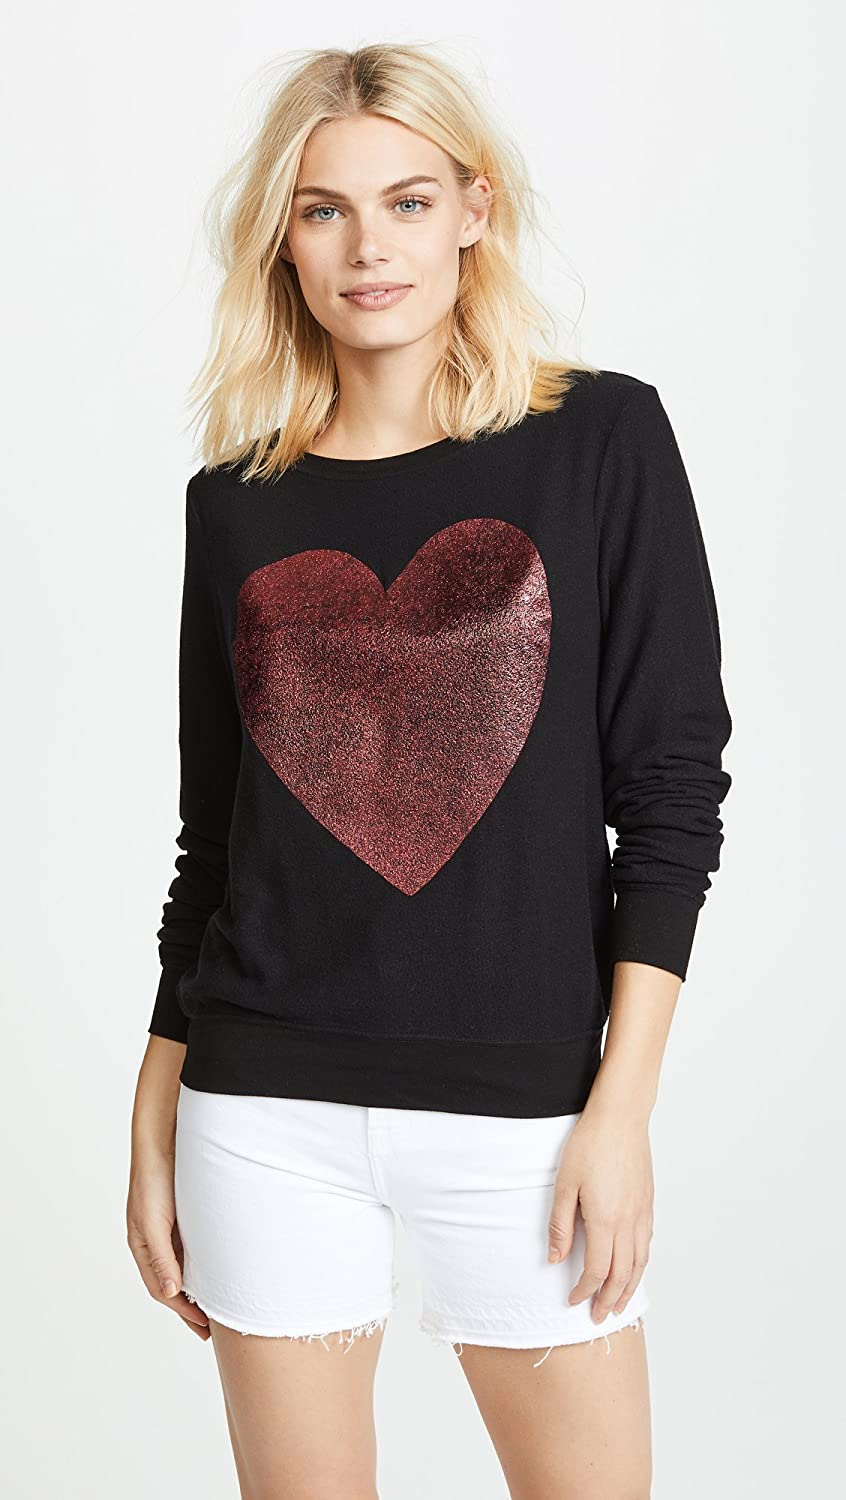 8f031a77d0 Wildfox Women s Sparkle Heart Baggy Beach Top at Amazon Women s Clothing  store